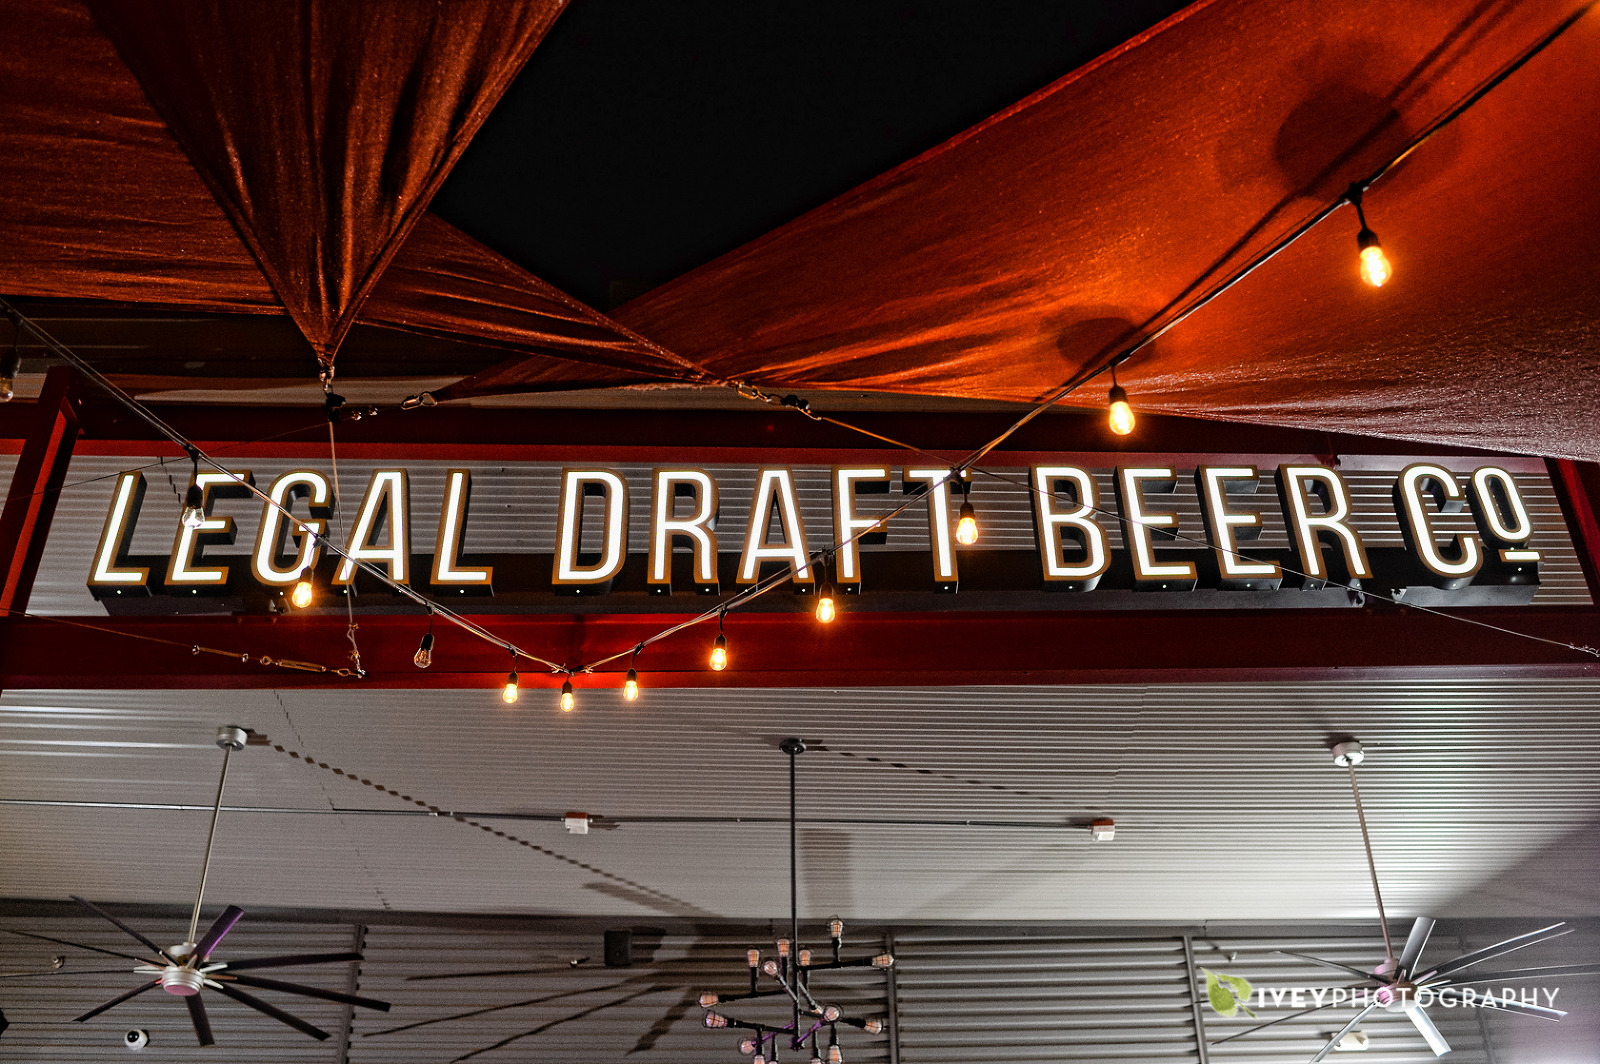 Arlington Wedding Photography Legal Draft Beer Co